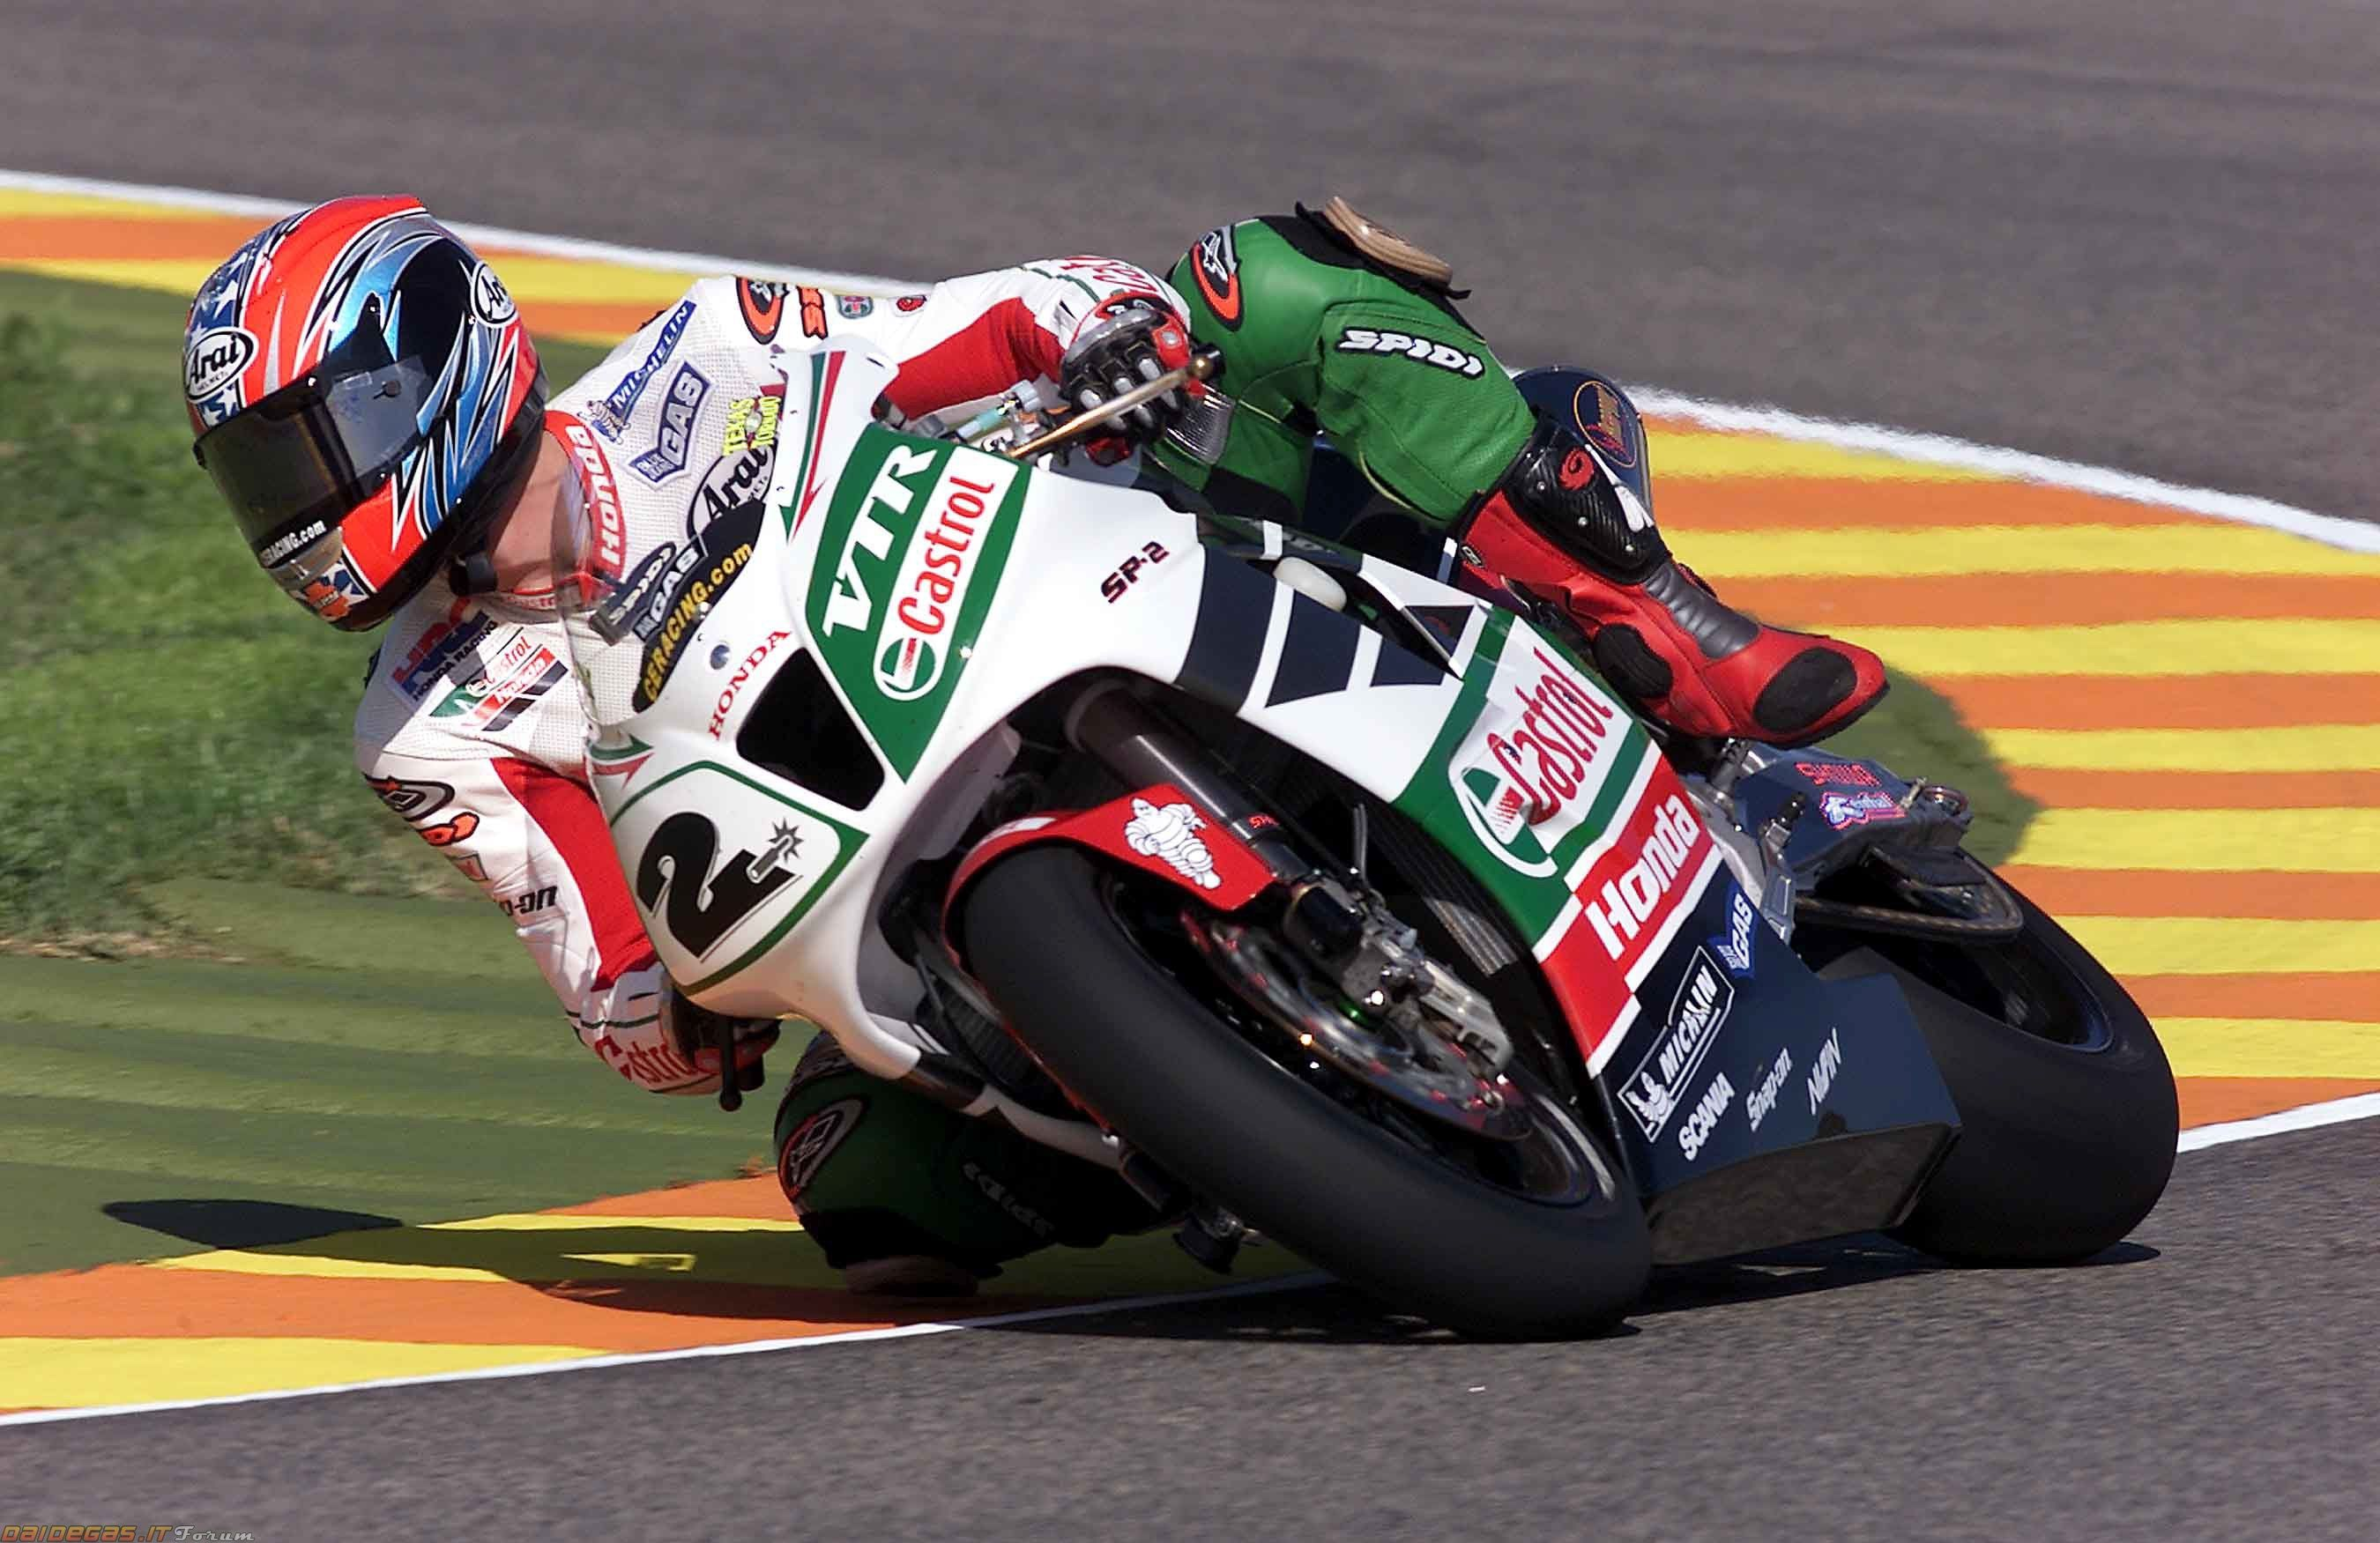 I miss the days when my bike was the wsbk champion of the world colin edwards on the 2002 castrol honda